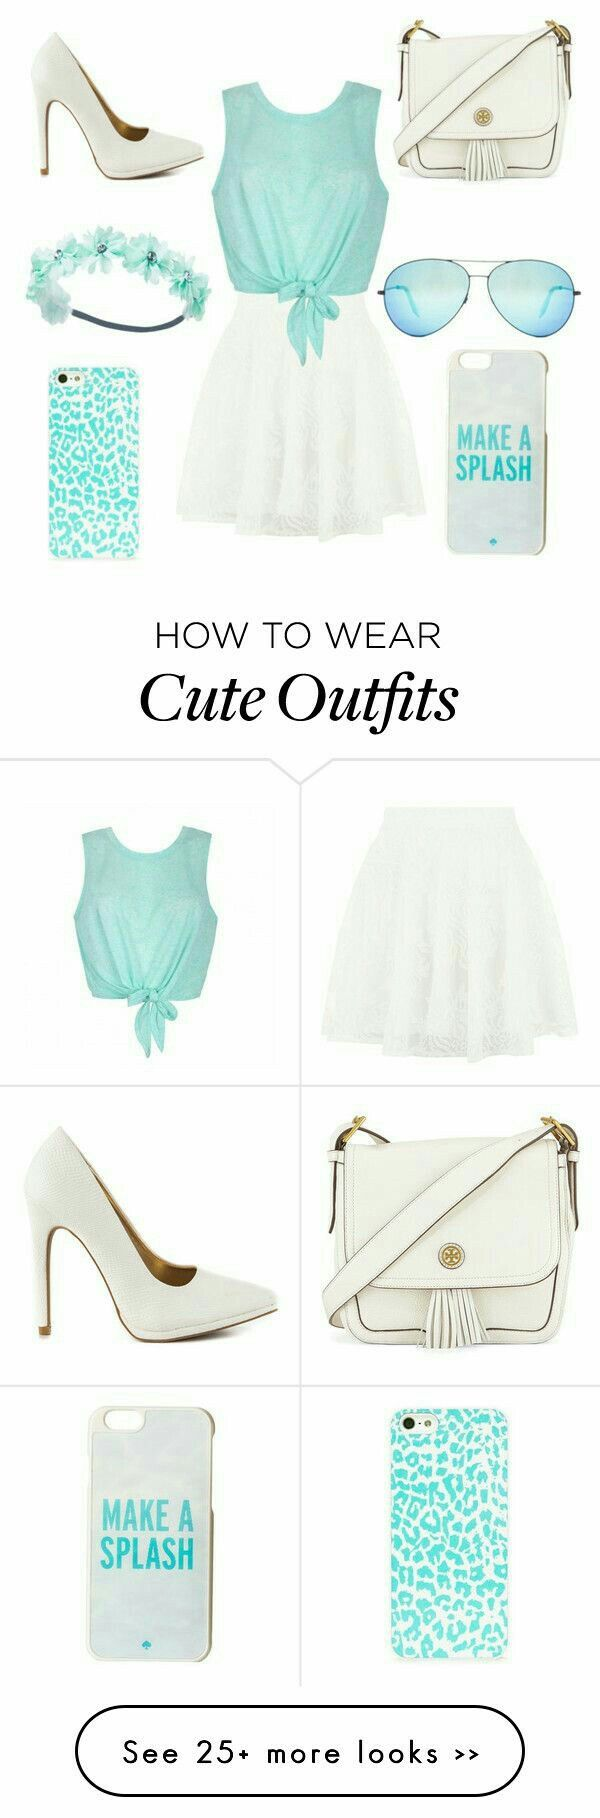 Really cute light greenish outfit for perfect tweens!!